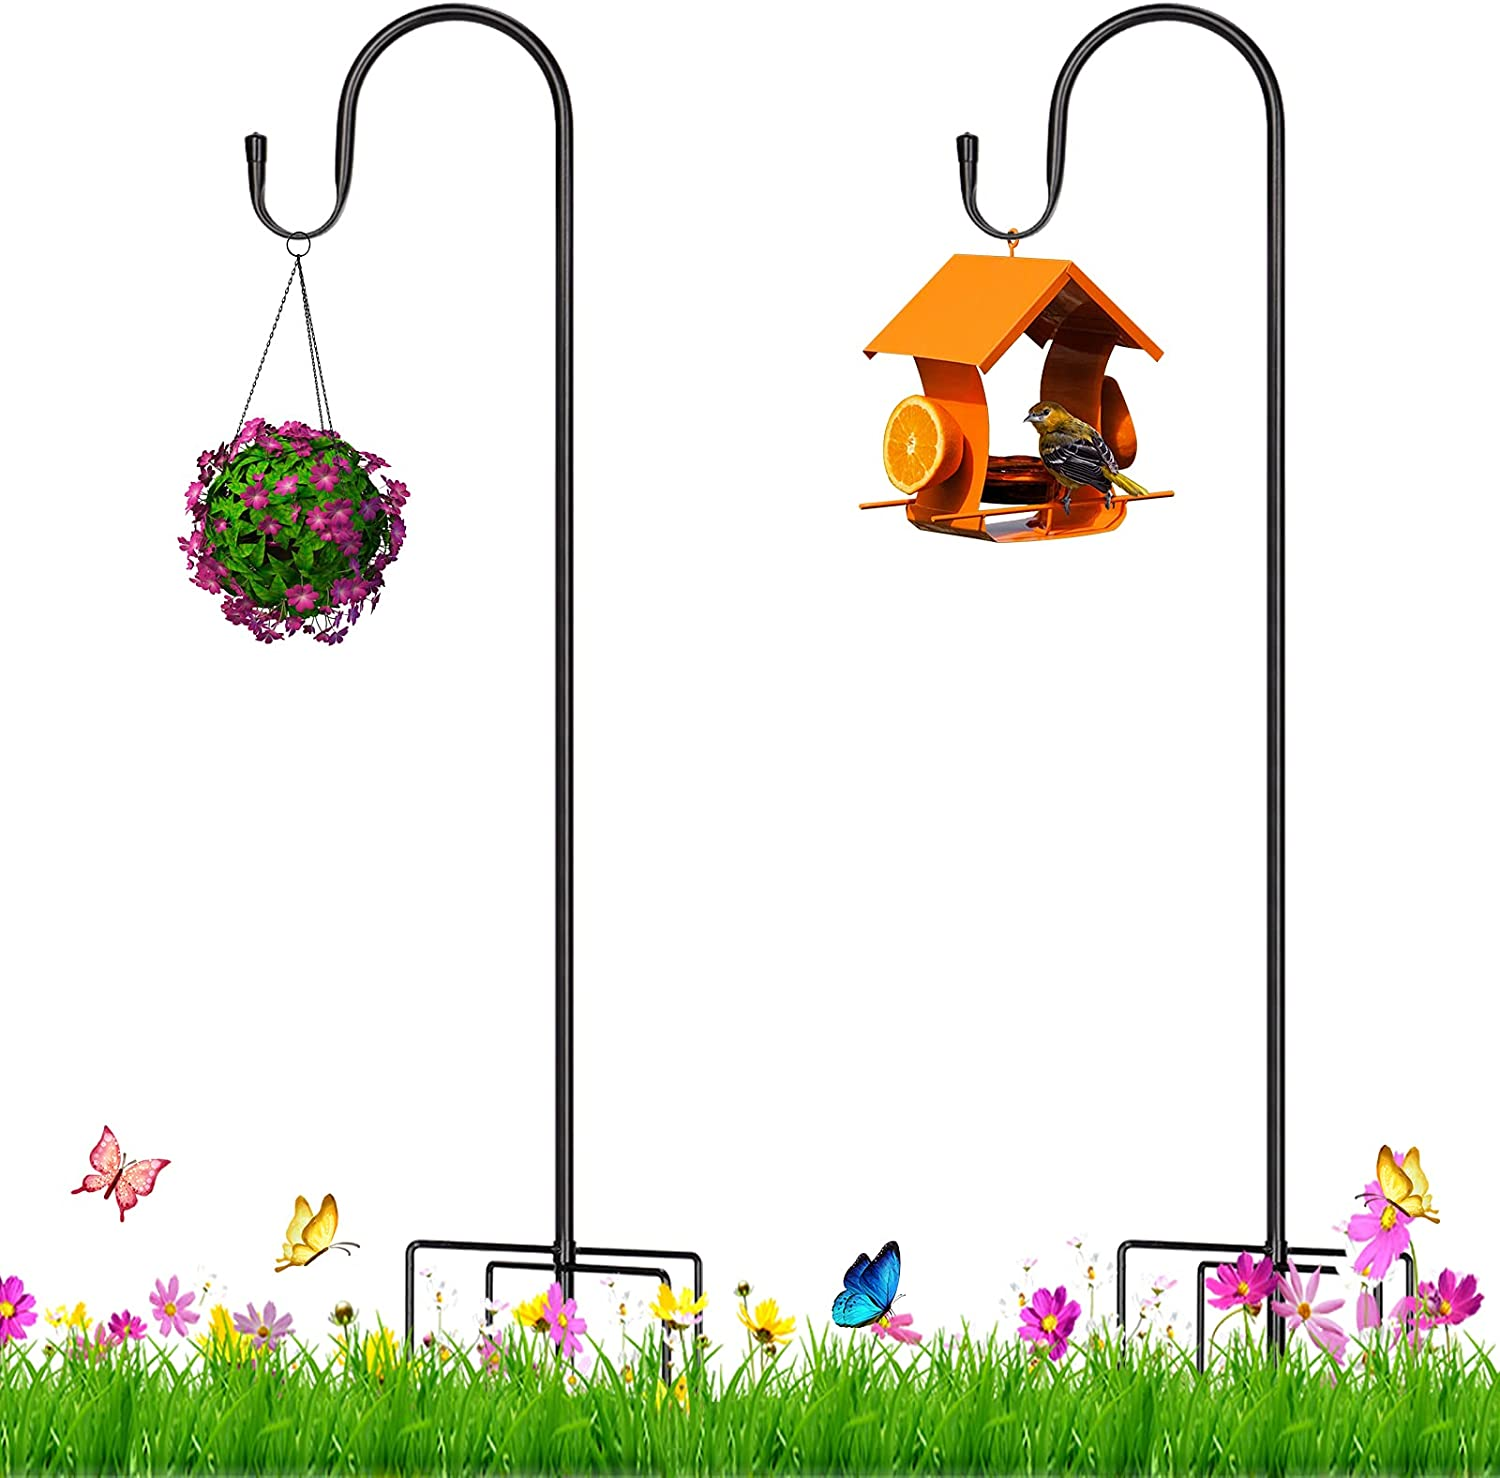 SHAWLAM Outdoor Shepherd Hooks and 5 Prong Base 78 Inch Tall,5/8 Inch Thick Adjustable Heavy Duty Garden Hanging Stand Holder (2 Packs),for Bird Feeders Solar Lights Plant Hangers Wedding Decorations